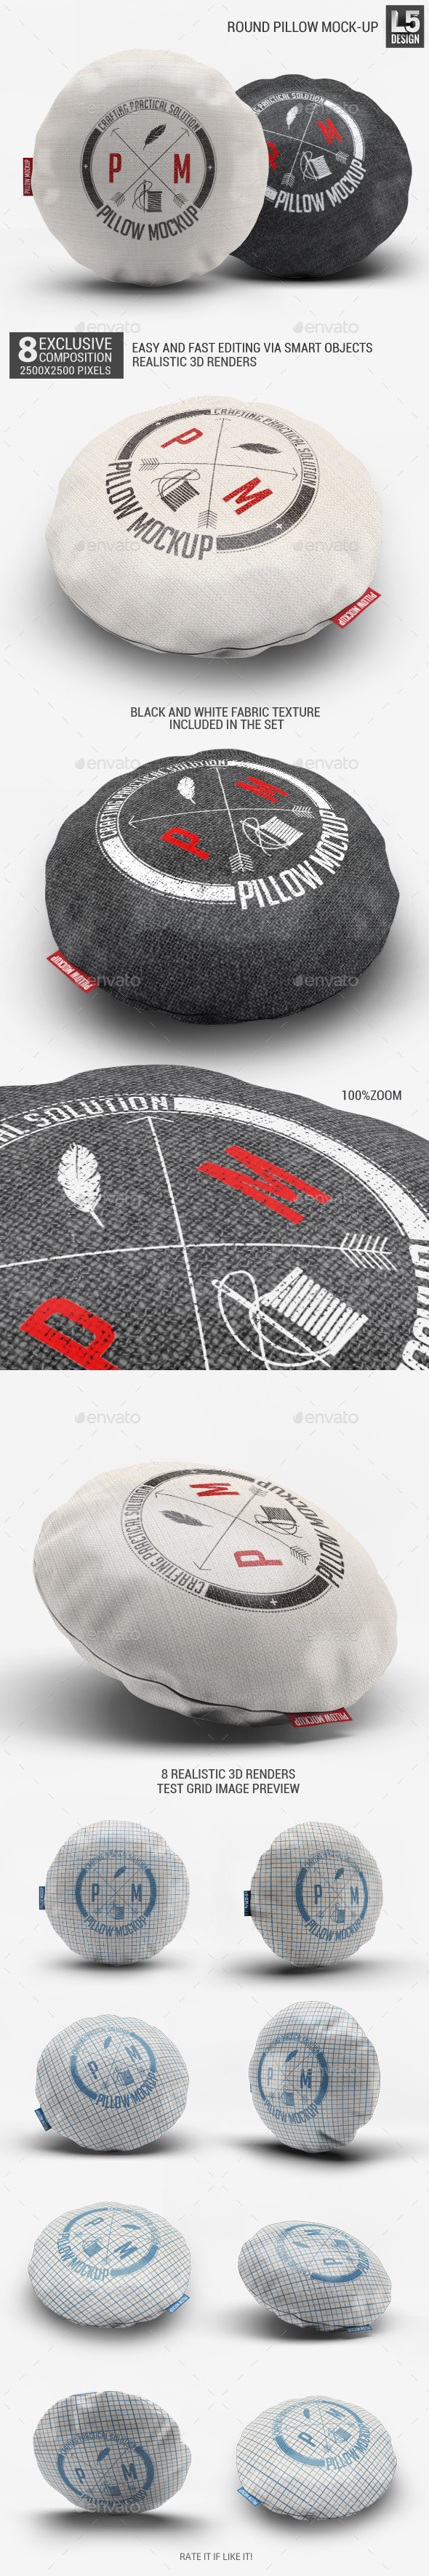 Round Pillow Mock-Up - Miscellaneous Product Mock-Ups